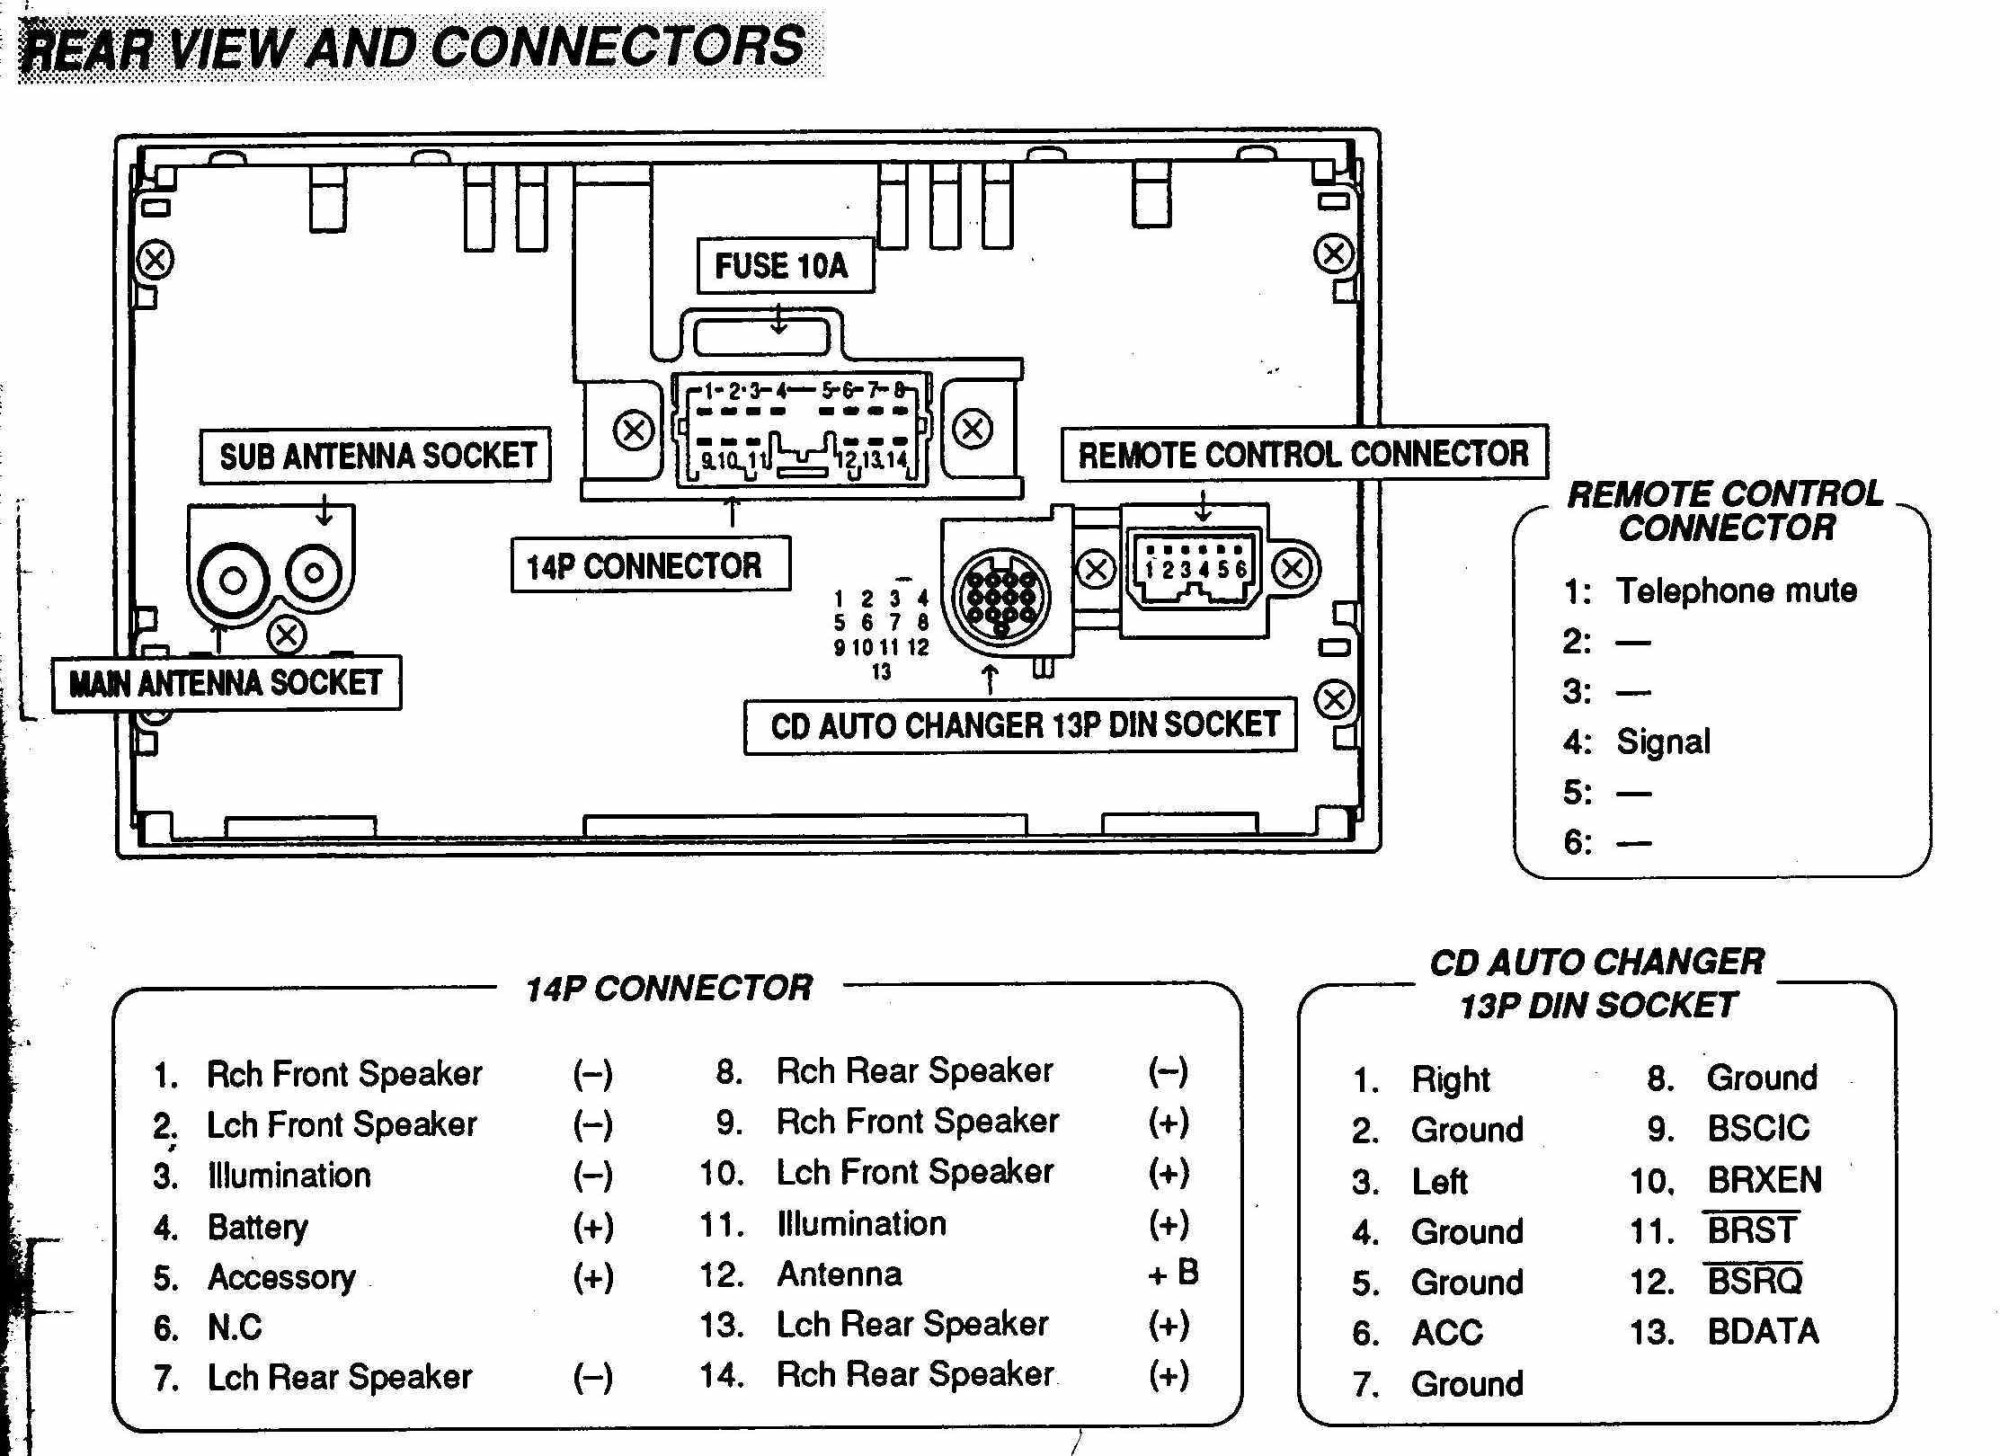 hight resolution of car stereo wiring diagram 2 batteries simple wiring schema car wiring harness diagram bose 9 speaker